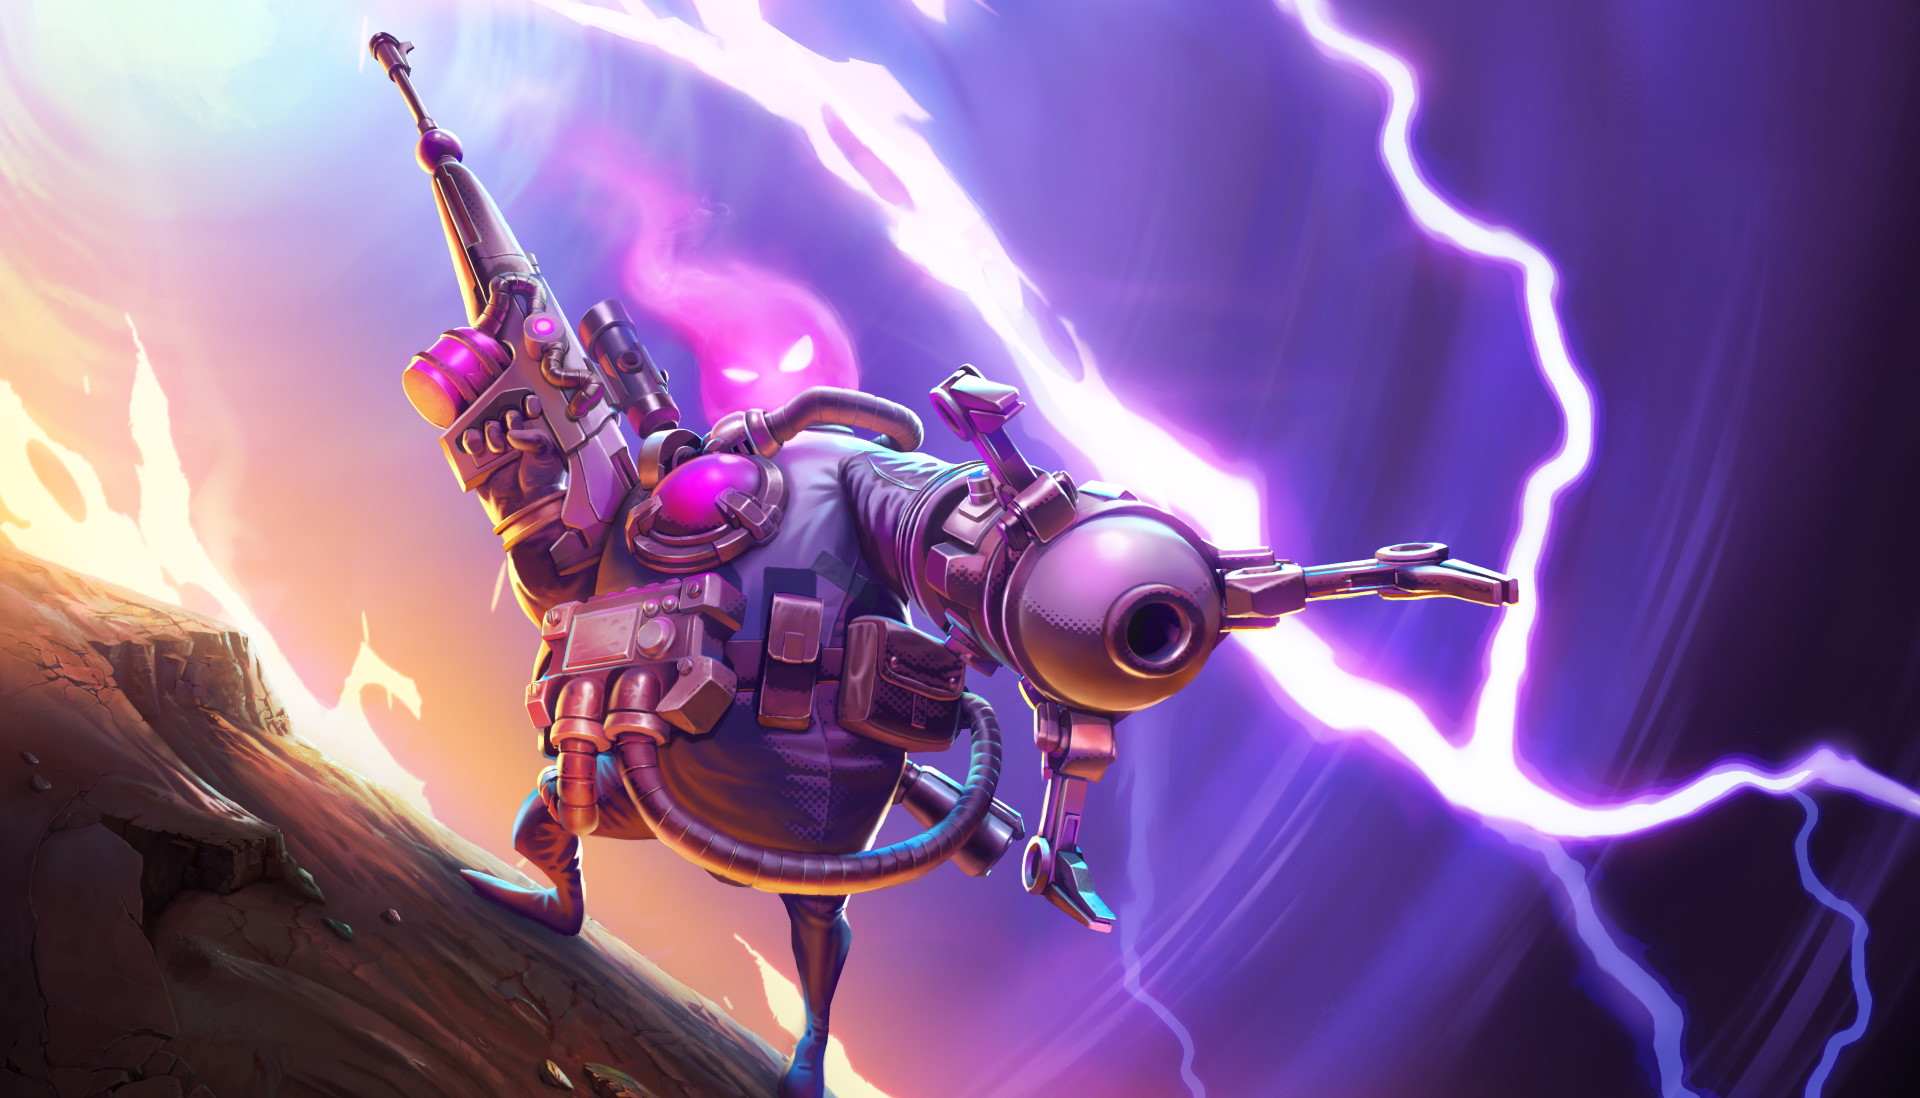 Drifters Loot the Galaxy is a high-mobility hero shooter in open beta on Steam